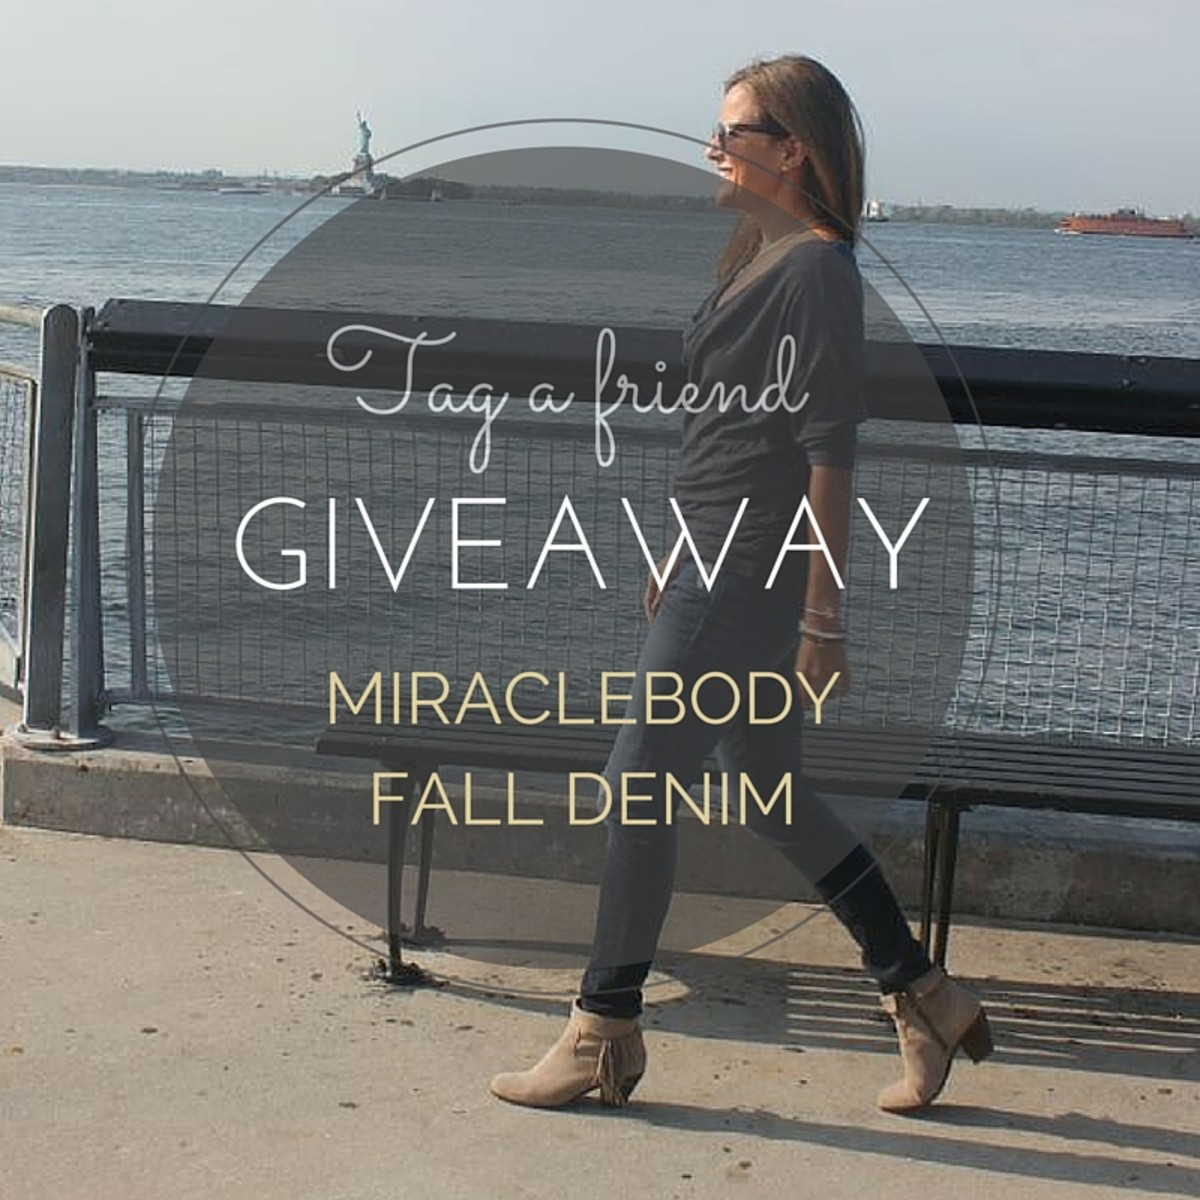 MIRACLEBODY DENIM GIVEAWAY (1)